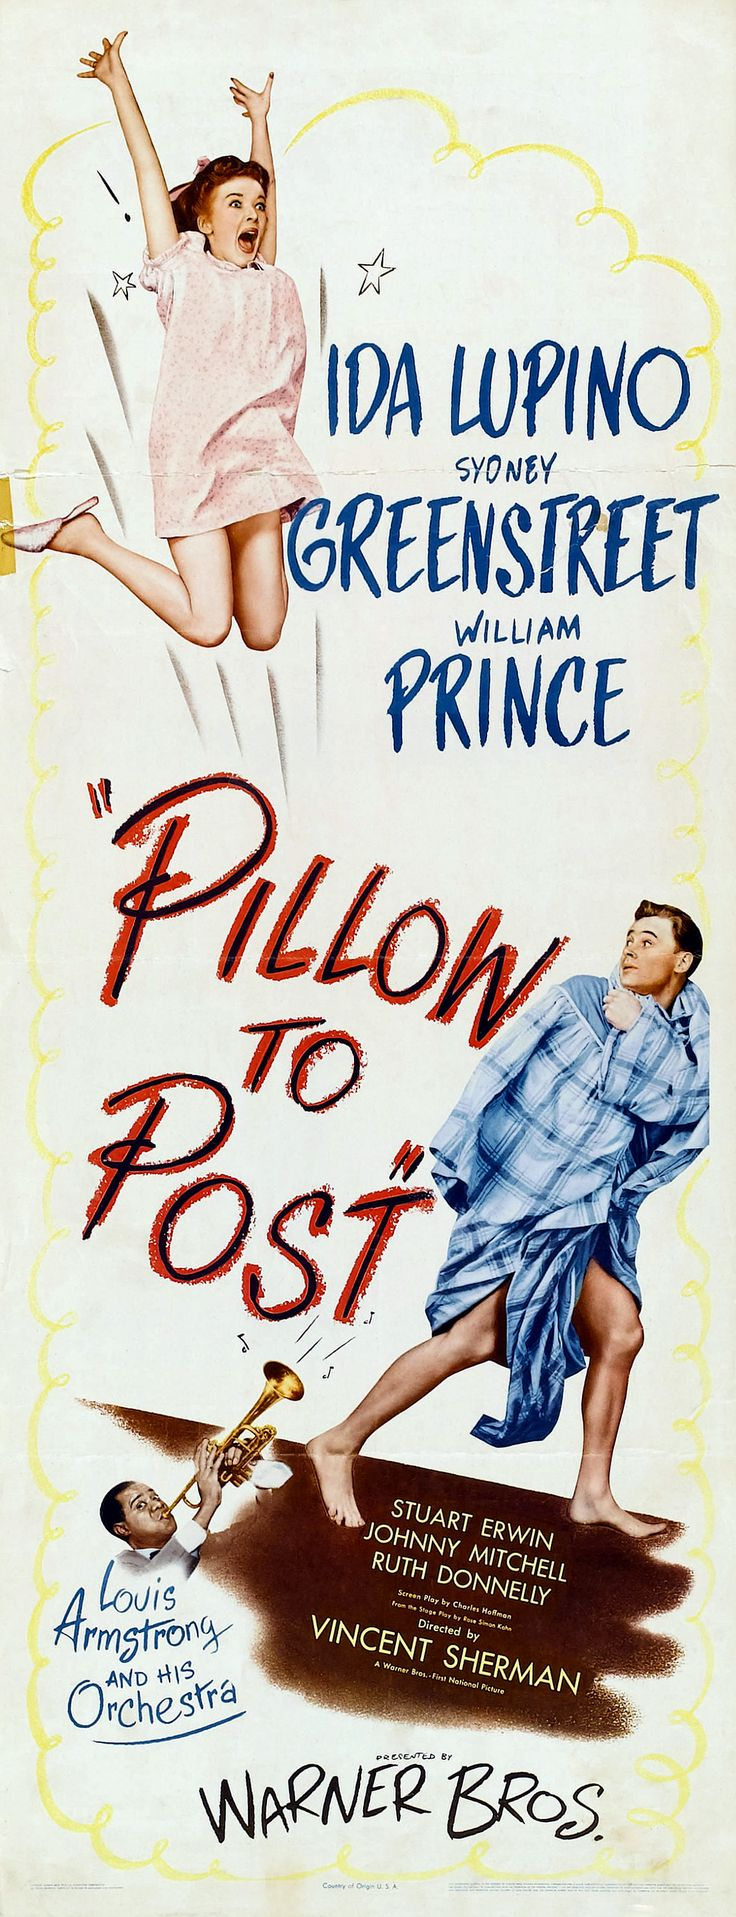 Pillow to Post (1945) Ida Lupino, Sydney Greenstreet, William Prince